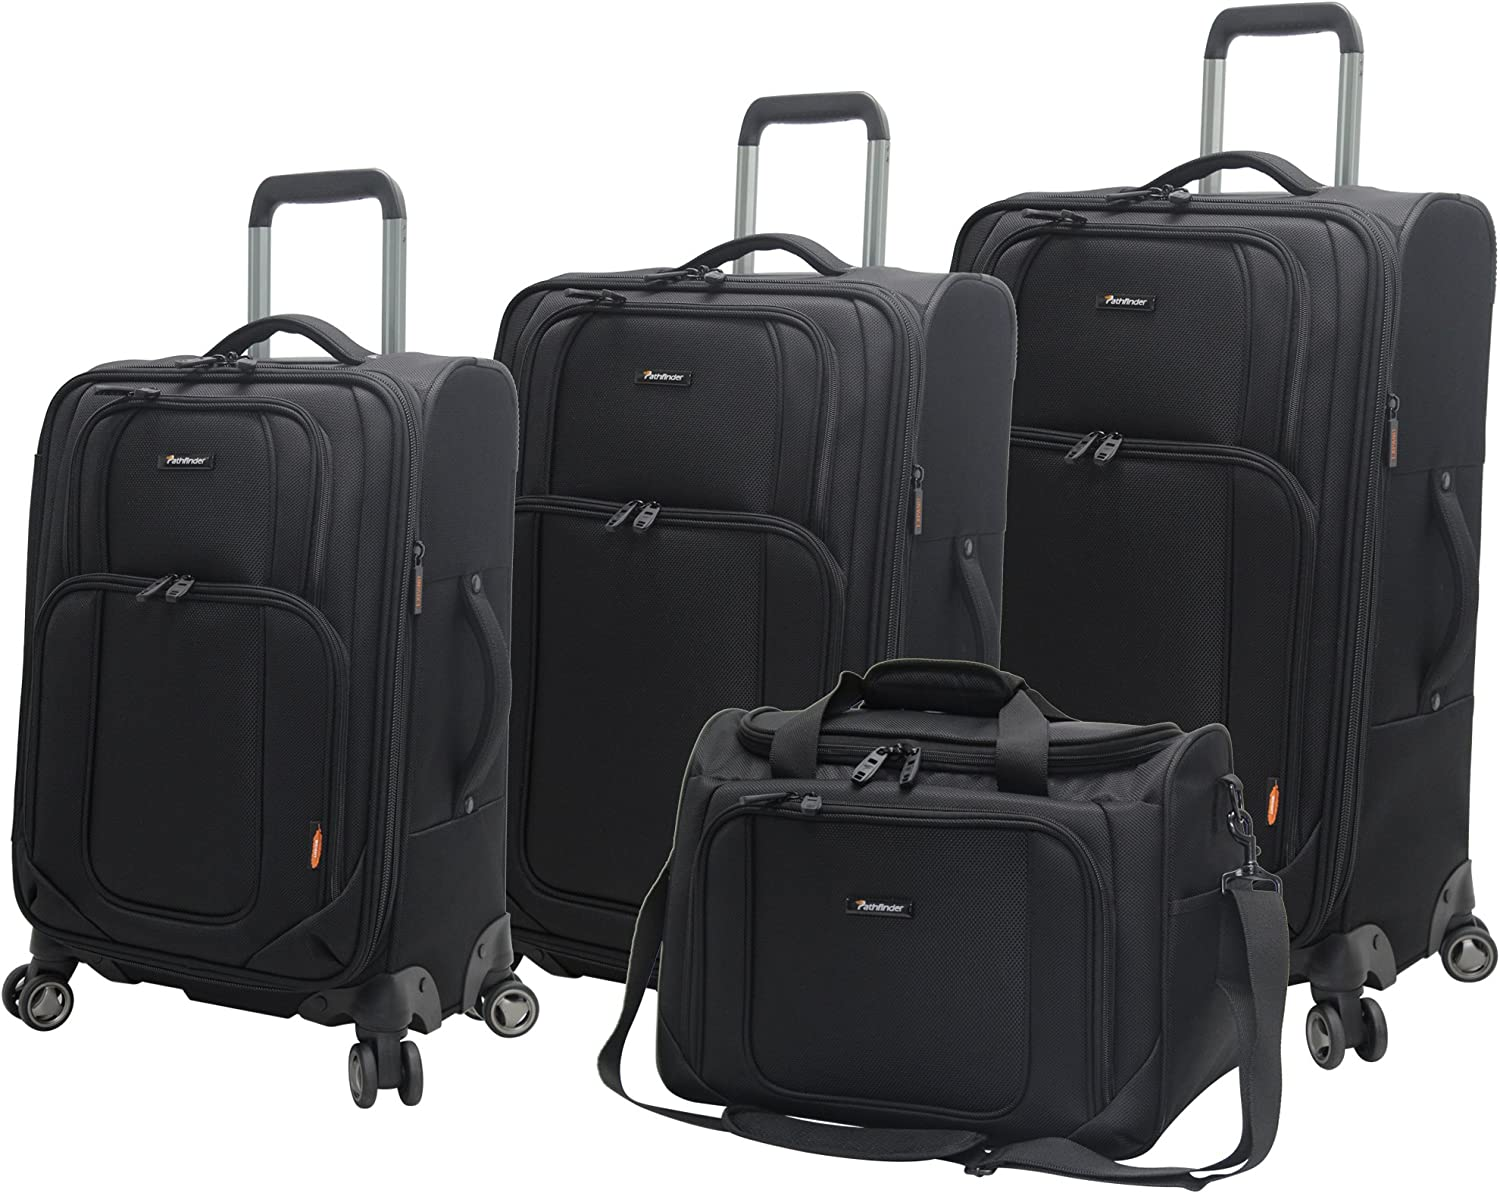 25 and 29 Inch Checked Suitcases 4 Piece Softside Lightweight Spinner Suitcase Set Travel Set includes Tote Bag Black Pathfinder Presidential Designer Luggage 21 Inch Carry on